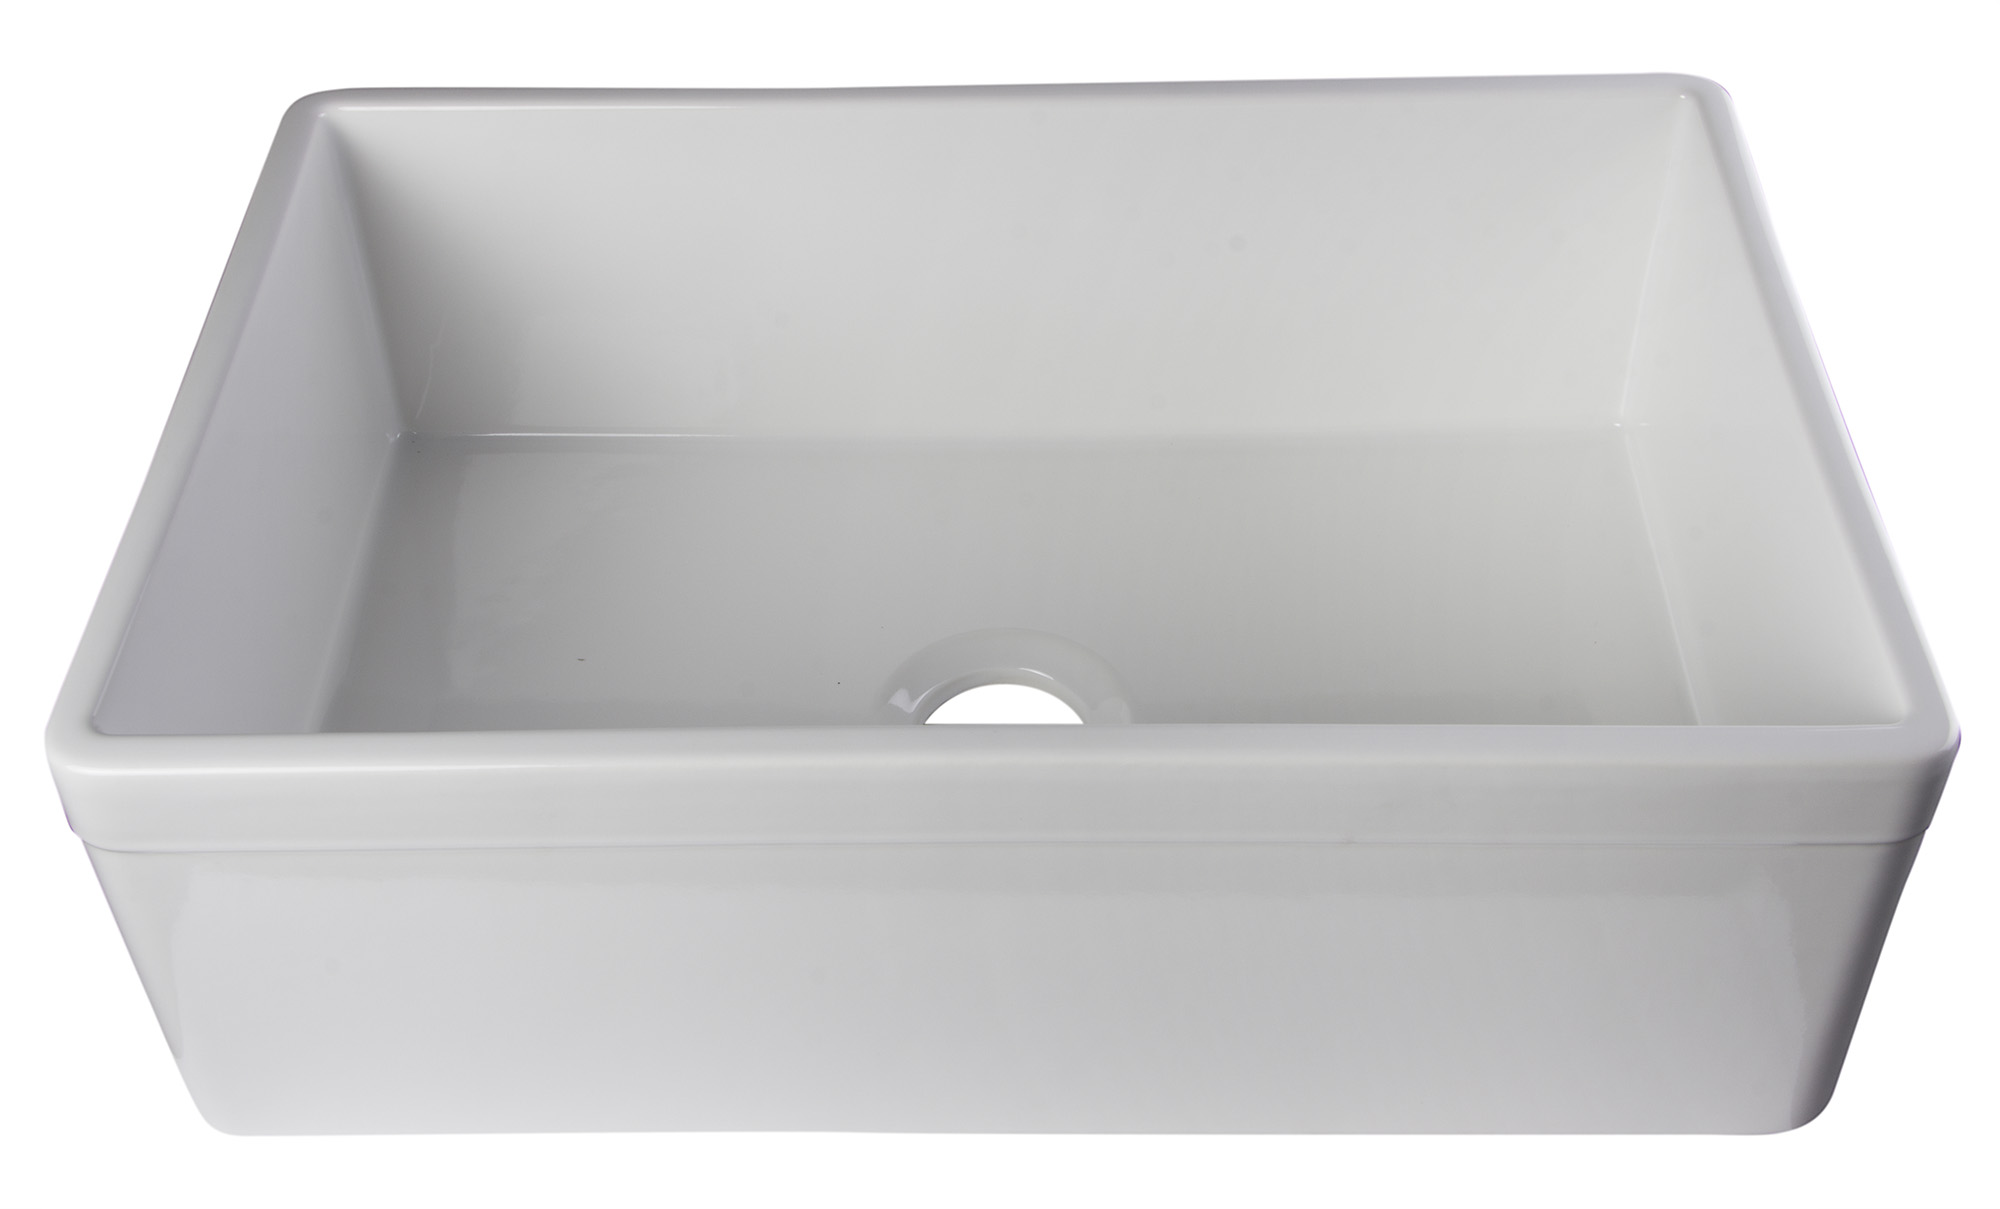 Alfi Brand Ab511 30 White Farm Sink With Lip Single Bowl Design For Kitchen